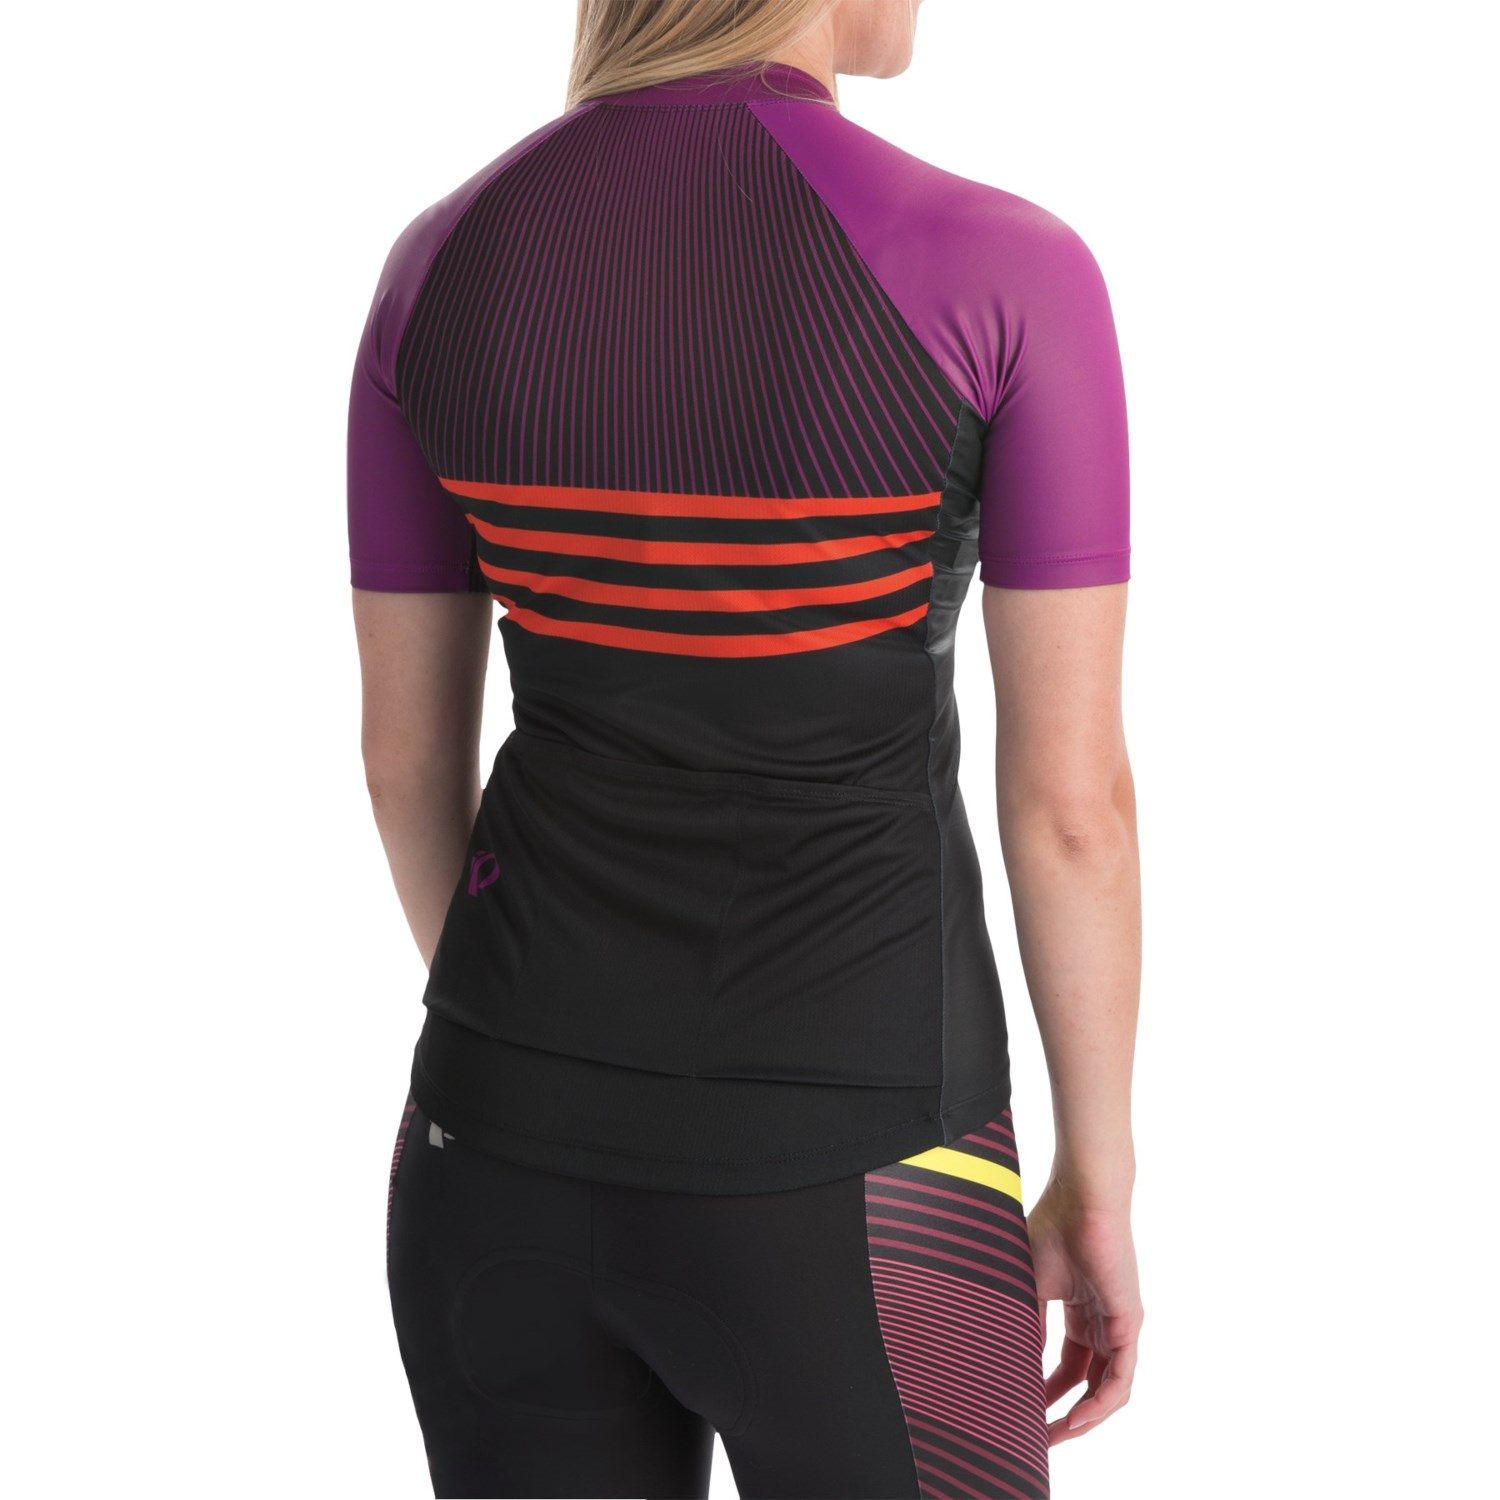 095cc7a1b Pearl Izumi ELITE Pursuit LTD Cycling Jersey (For Women) - Save 58%